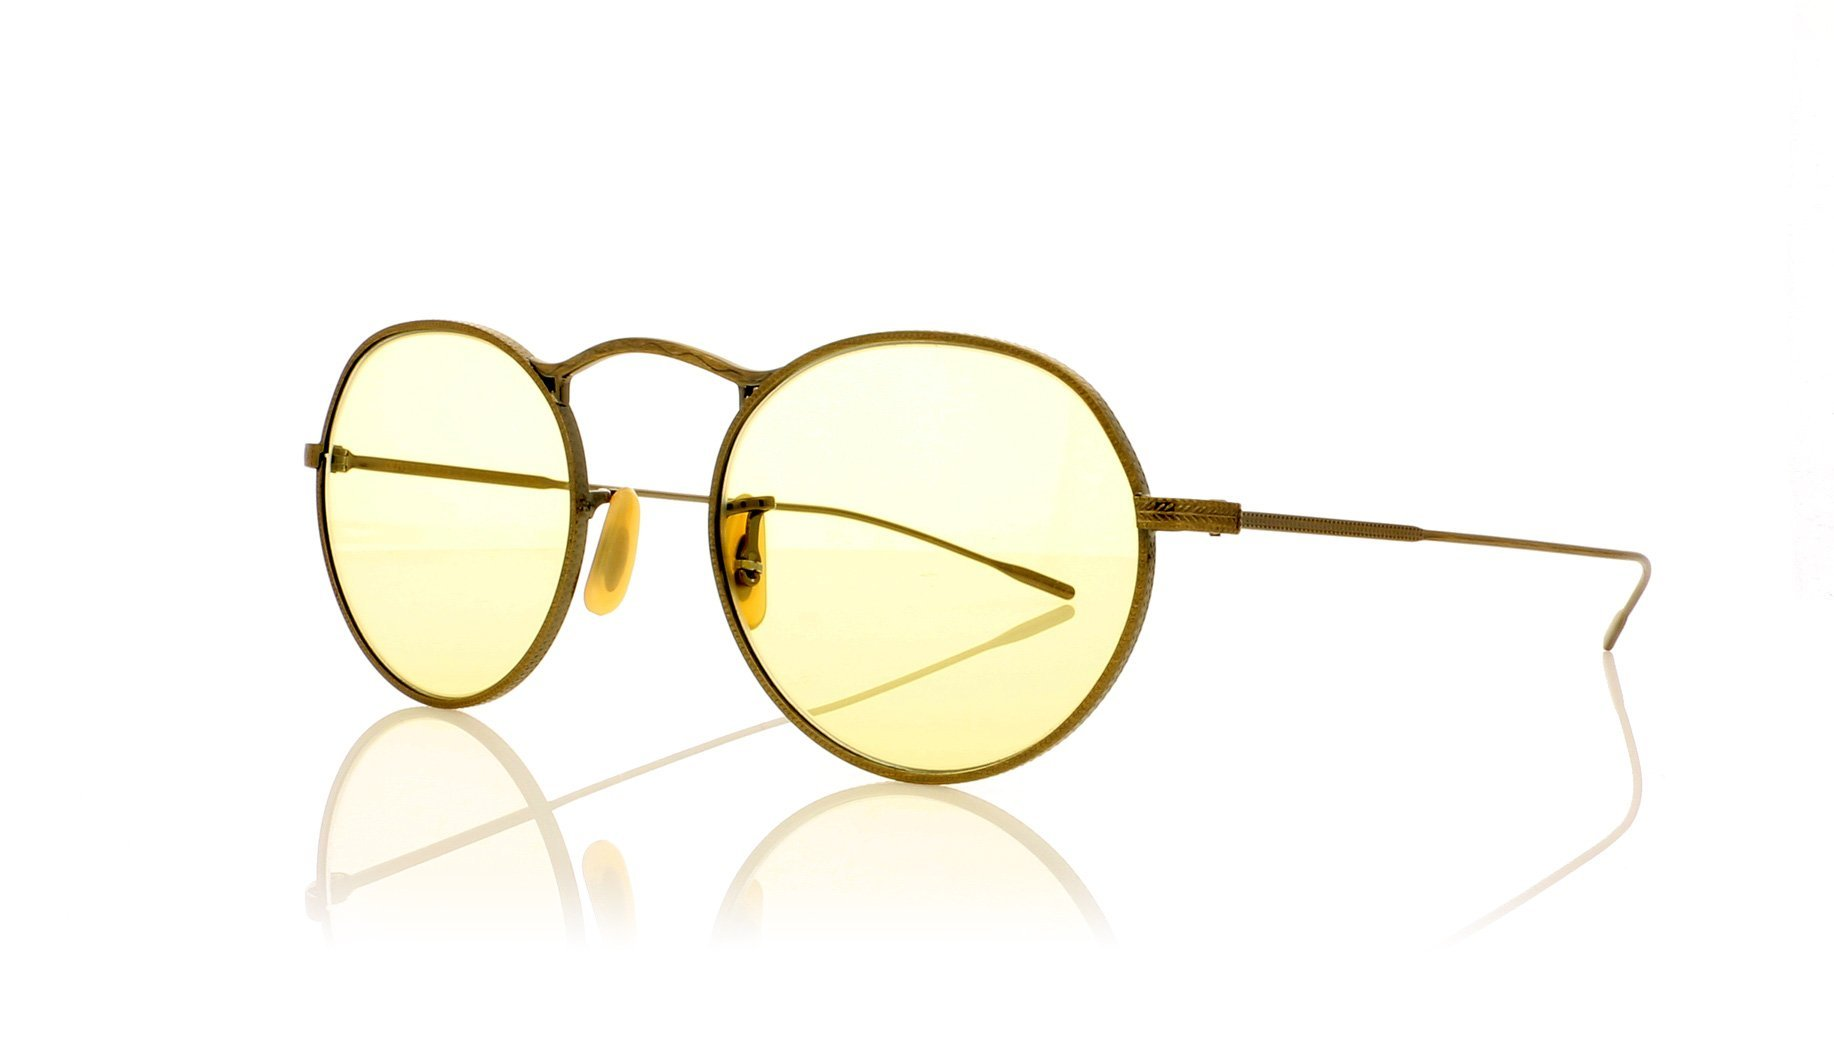 en M Ov1220s Peoples Oliver 4 Gold Antique Oco 30 5039r6 Sunglasses OwznqnI5